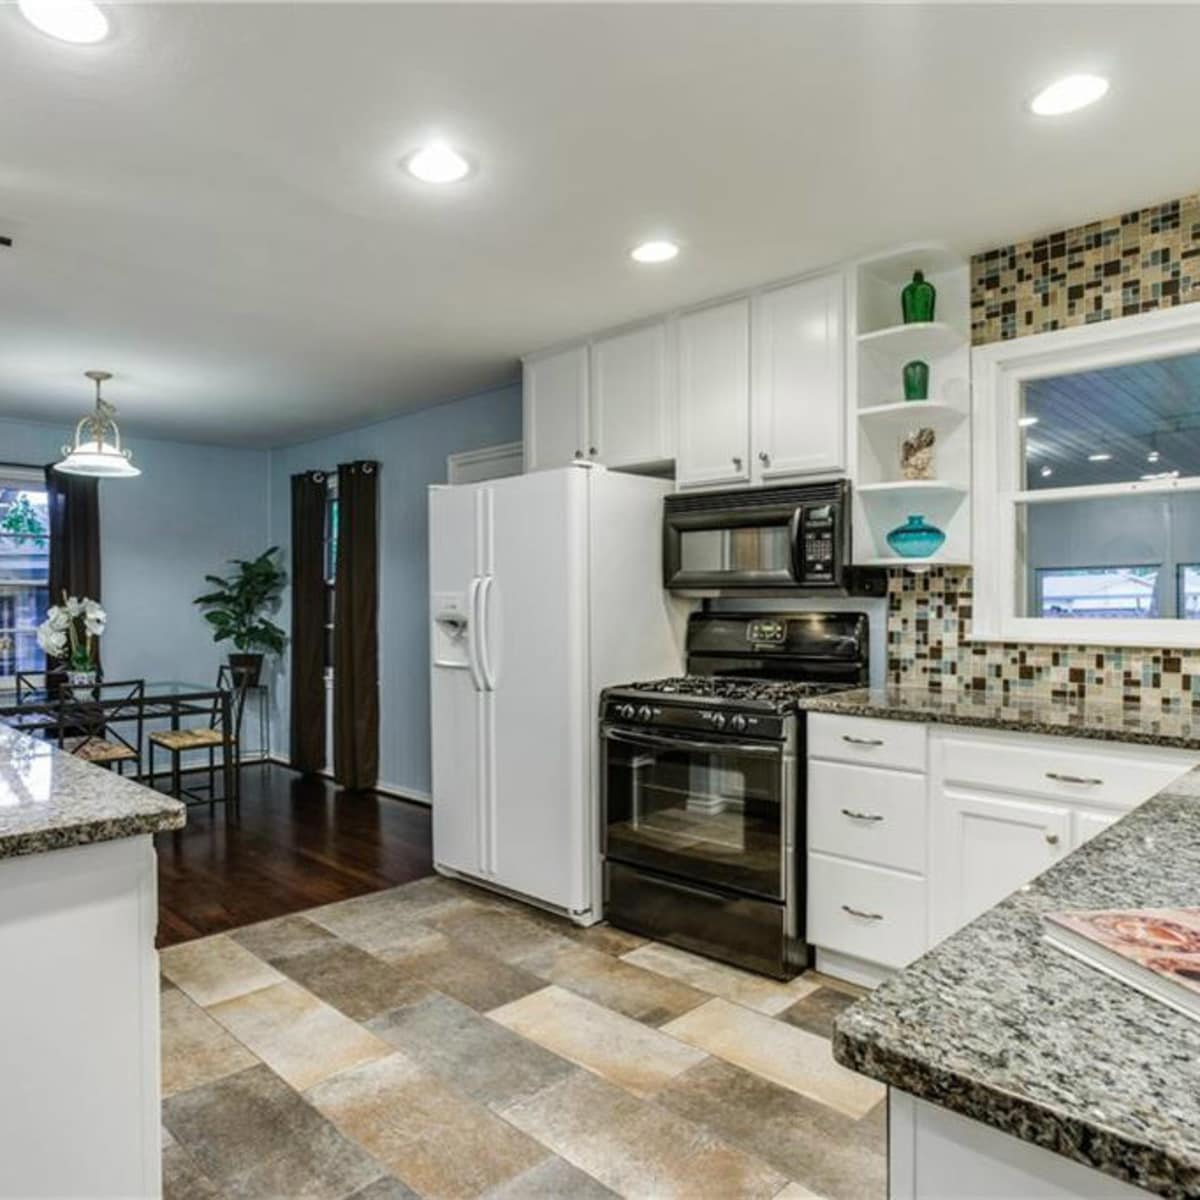 Kitchen at 11207 Sinclair Ave in Dallas